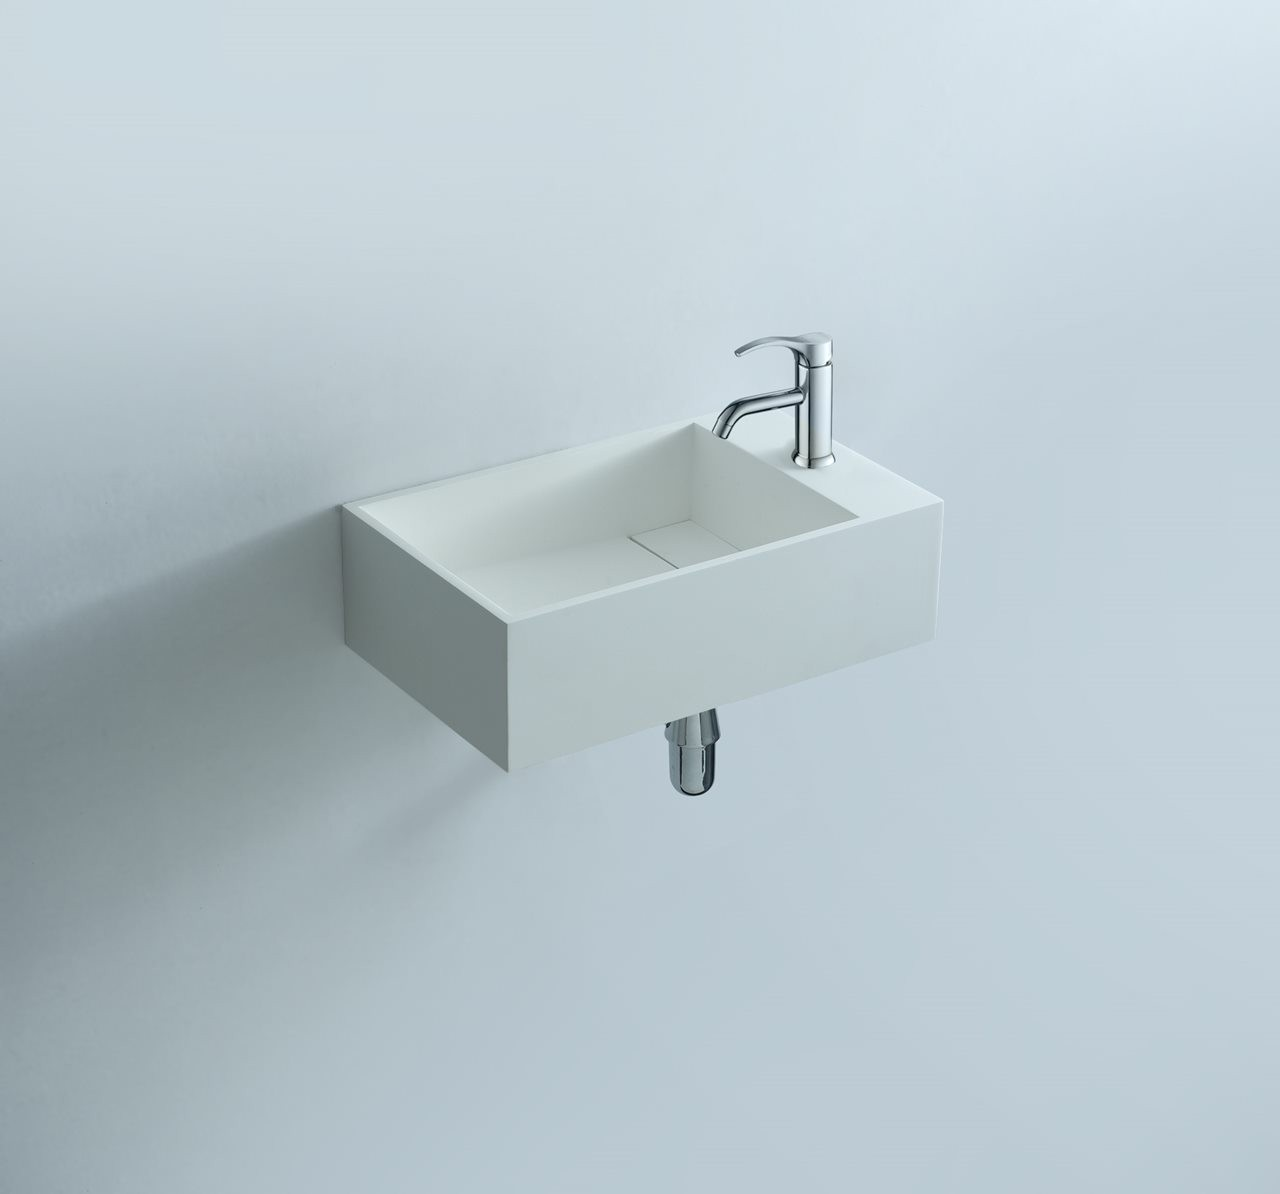 124-280172 SolidCUBE washbasin 400x220x100mm